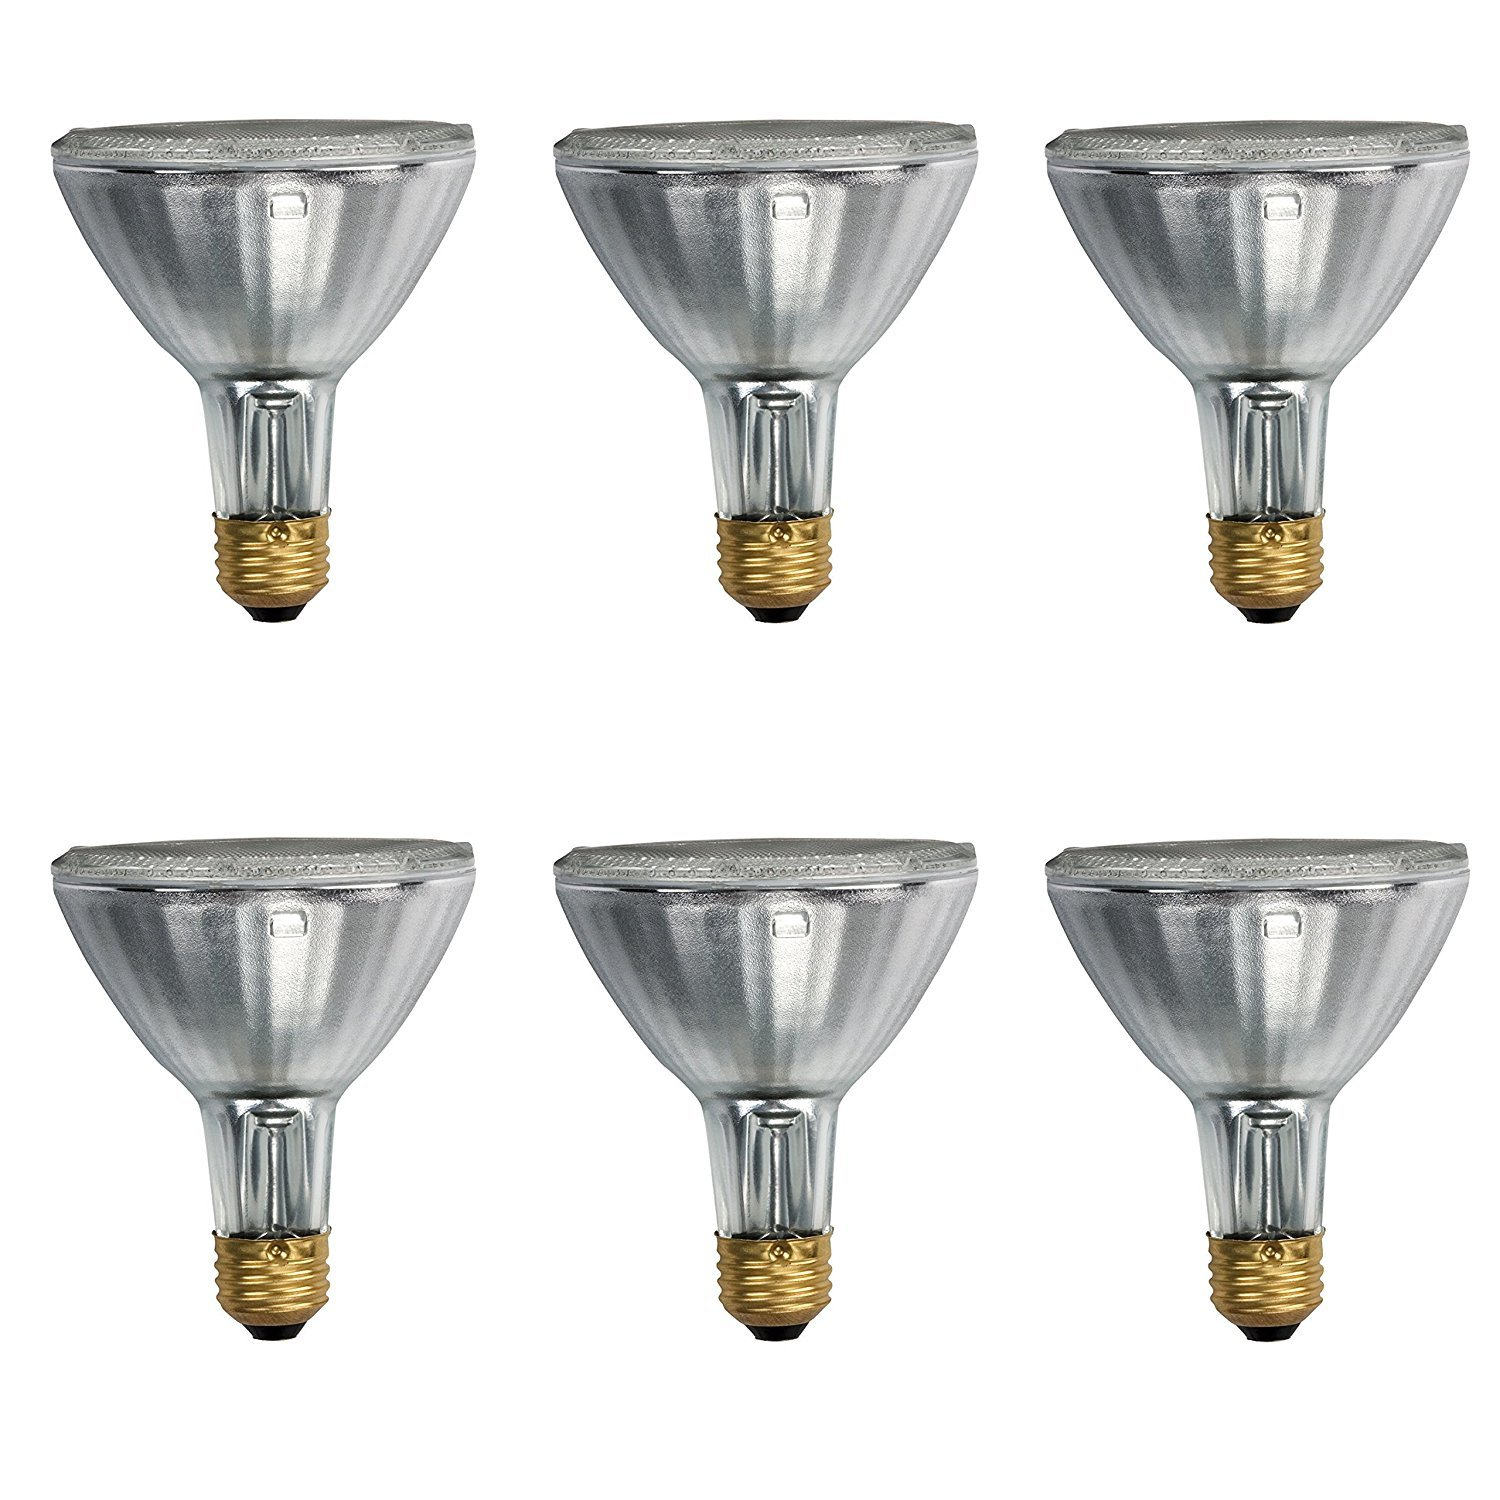 Philips 419747 EcoVantage PAR30 Long Neck 39 Watt (50 Watt Equivalent) 25 Degree Halogen Flood Light Bulb (6 Pack)